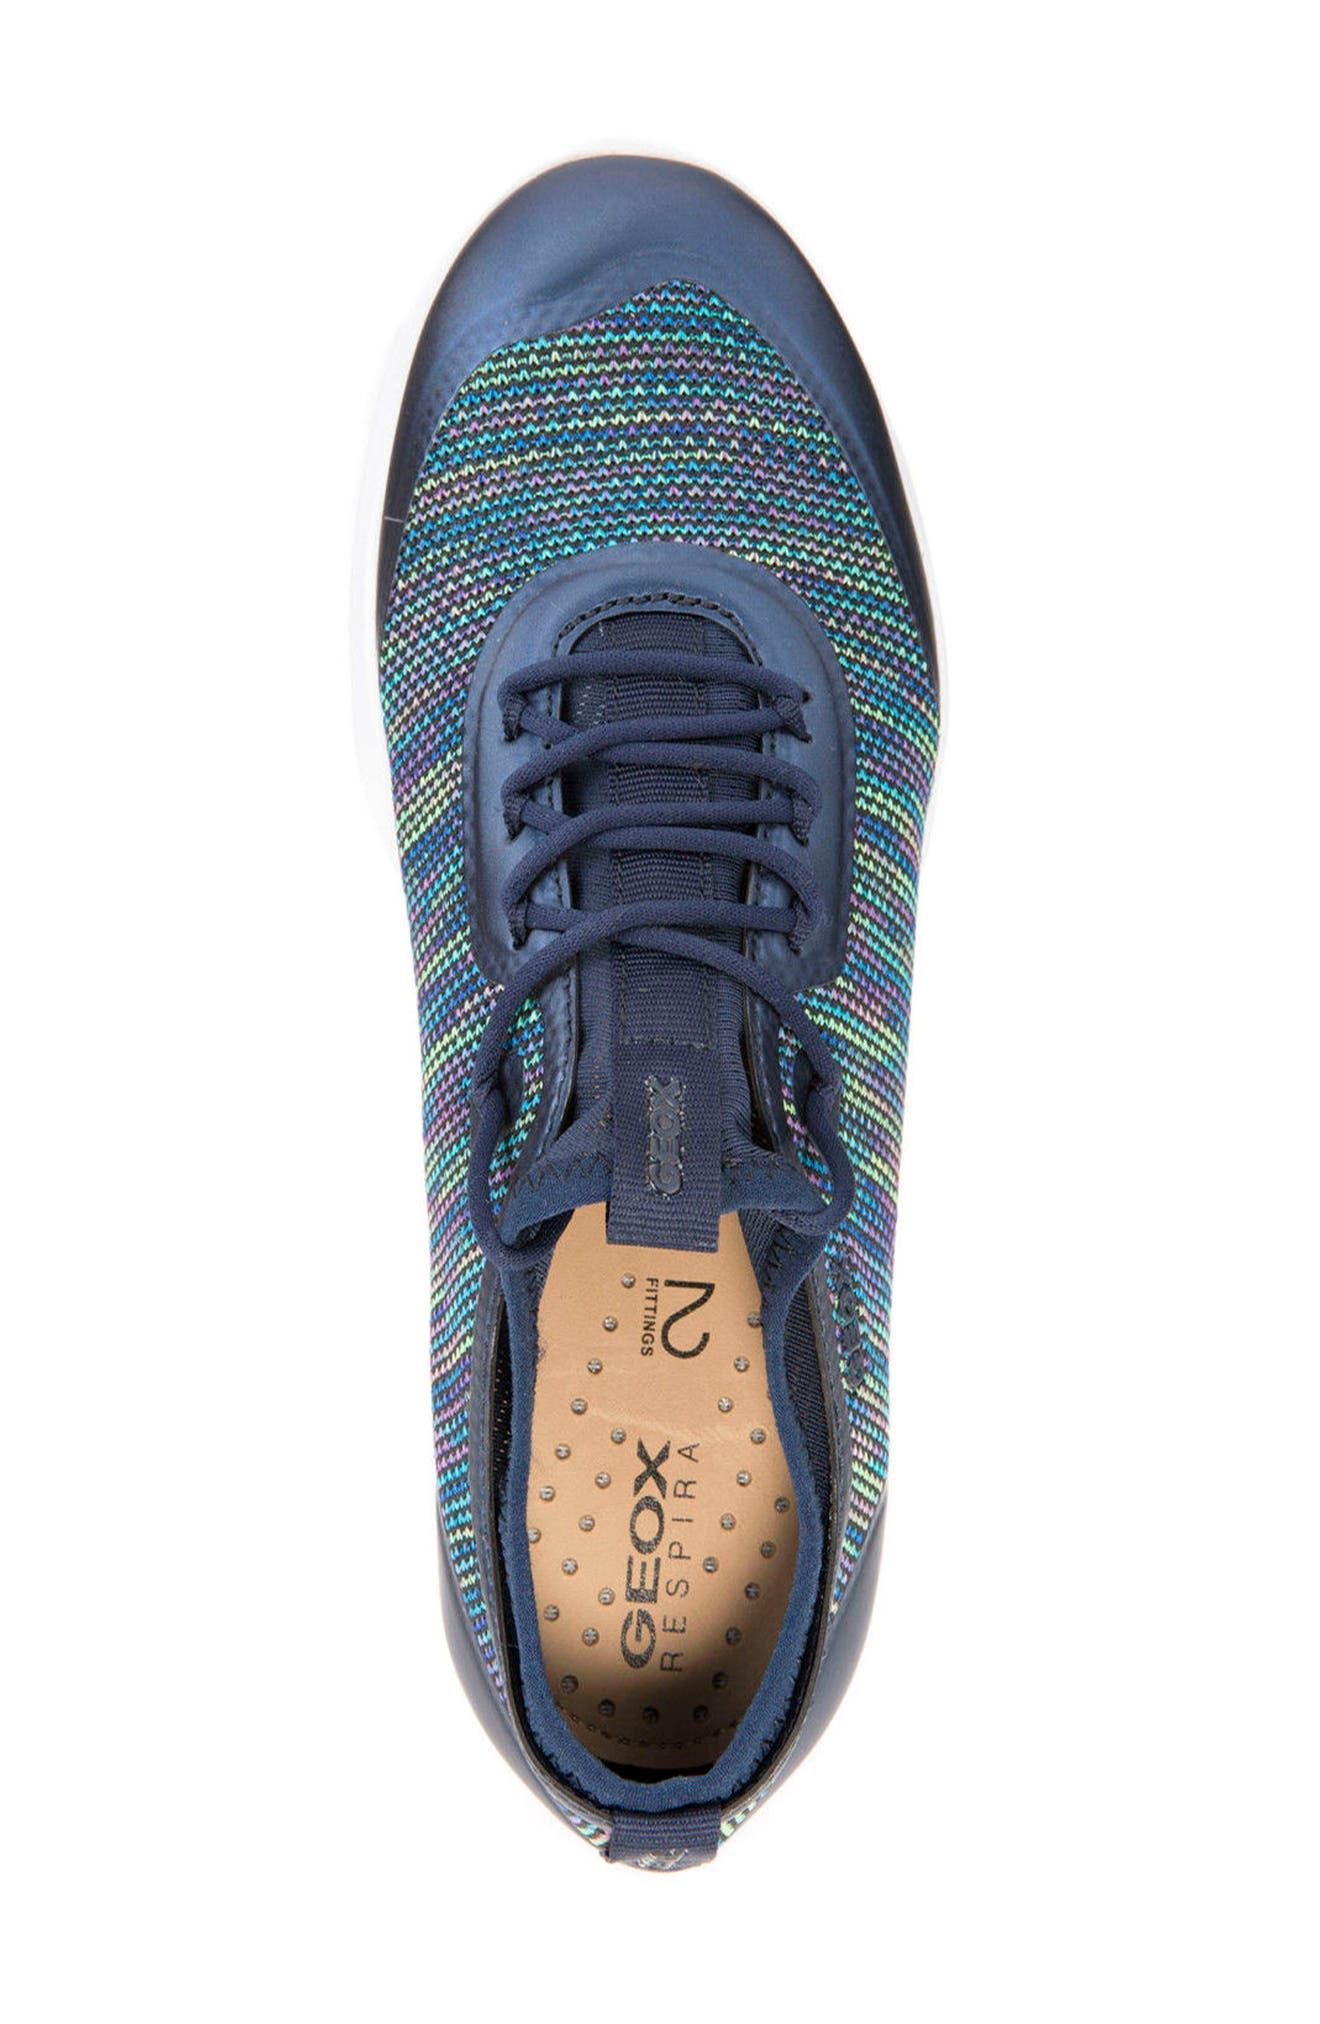 Nebula X Knit Sneaker,                             Alternate thumbnail 4, color,                             Denim Leather